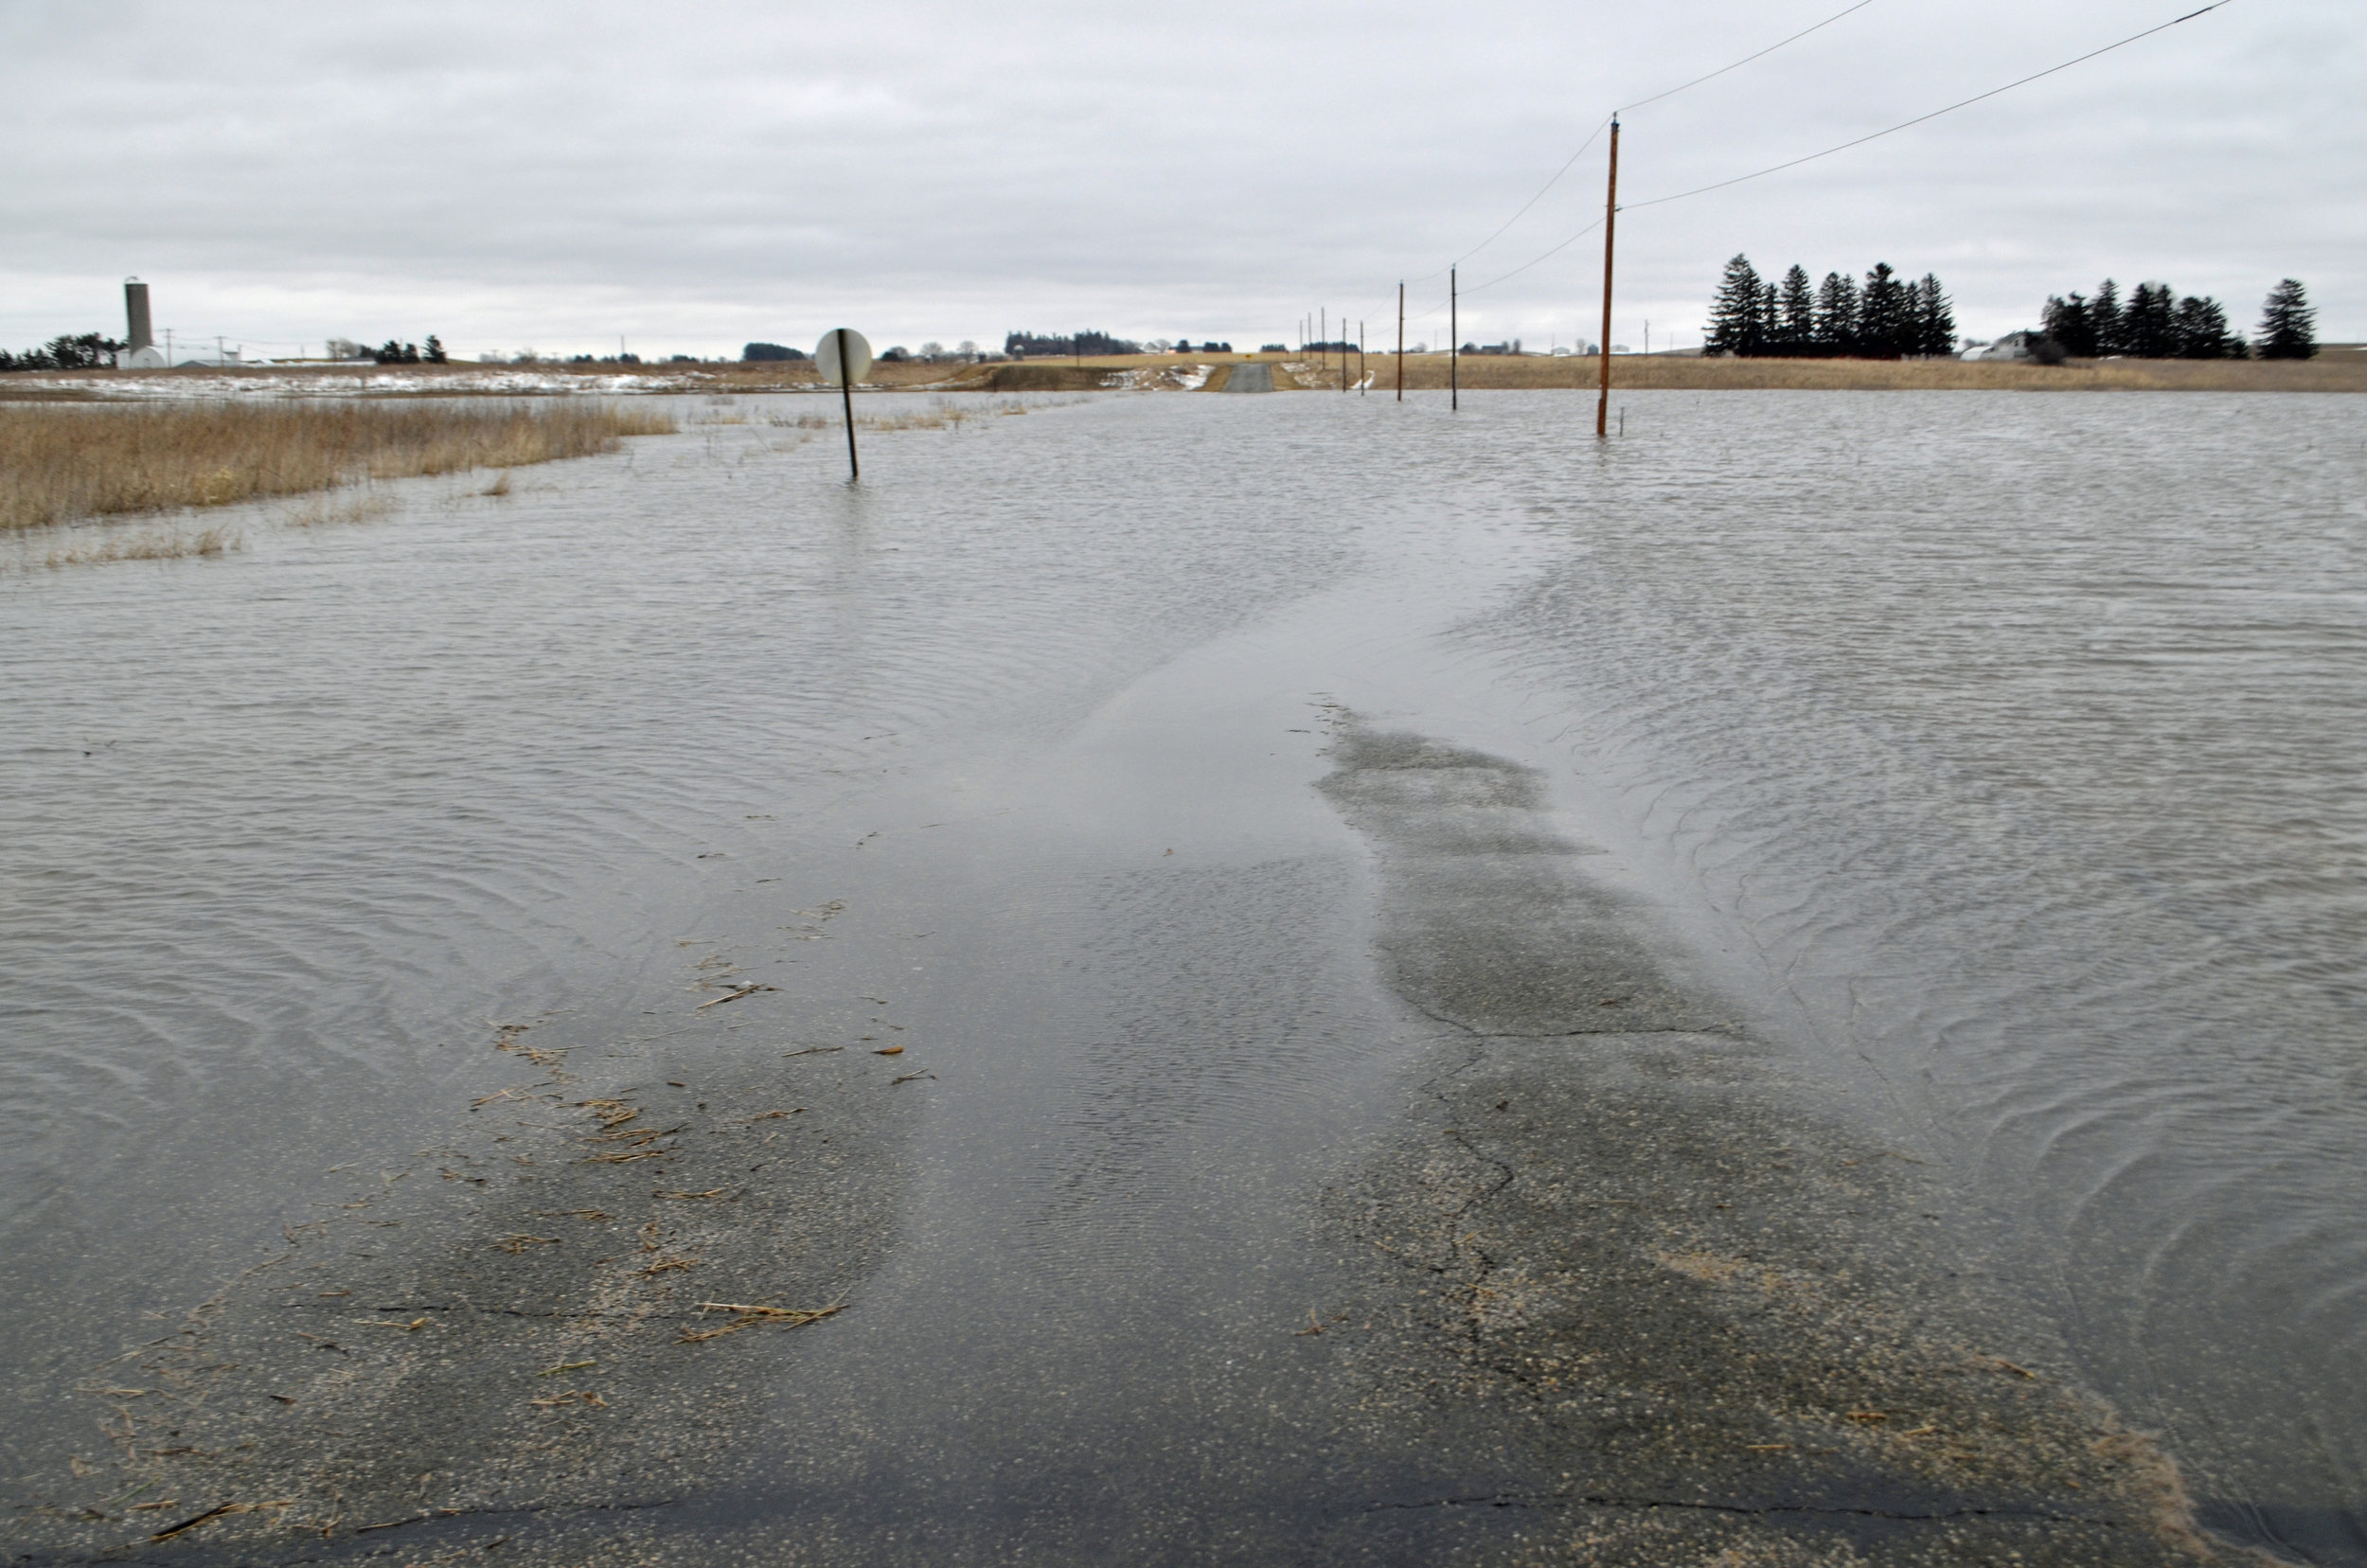 Above: Kampen Road (looking east toward Goose Pond Road).  Water is eight inches deep and covers 1,000 feet of road. So far one car stalled in the high water and had to be towed out. Some of the asphalt was deeply undercut, and there are ongoing road repairs due to safety issues.